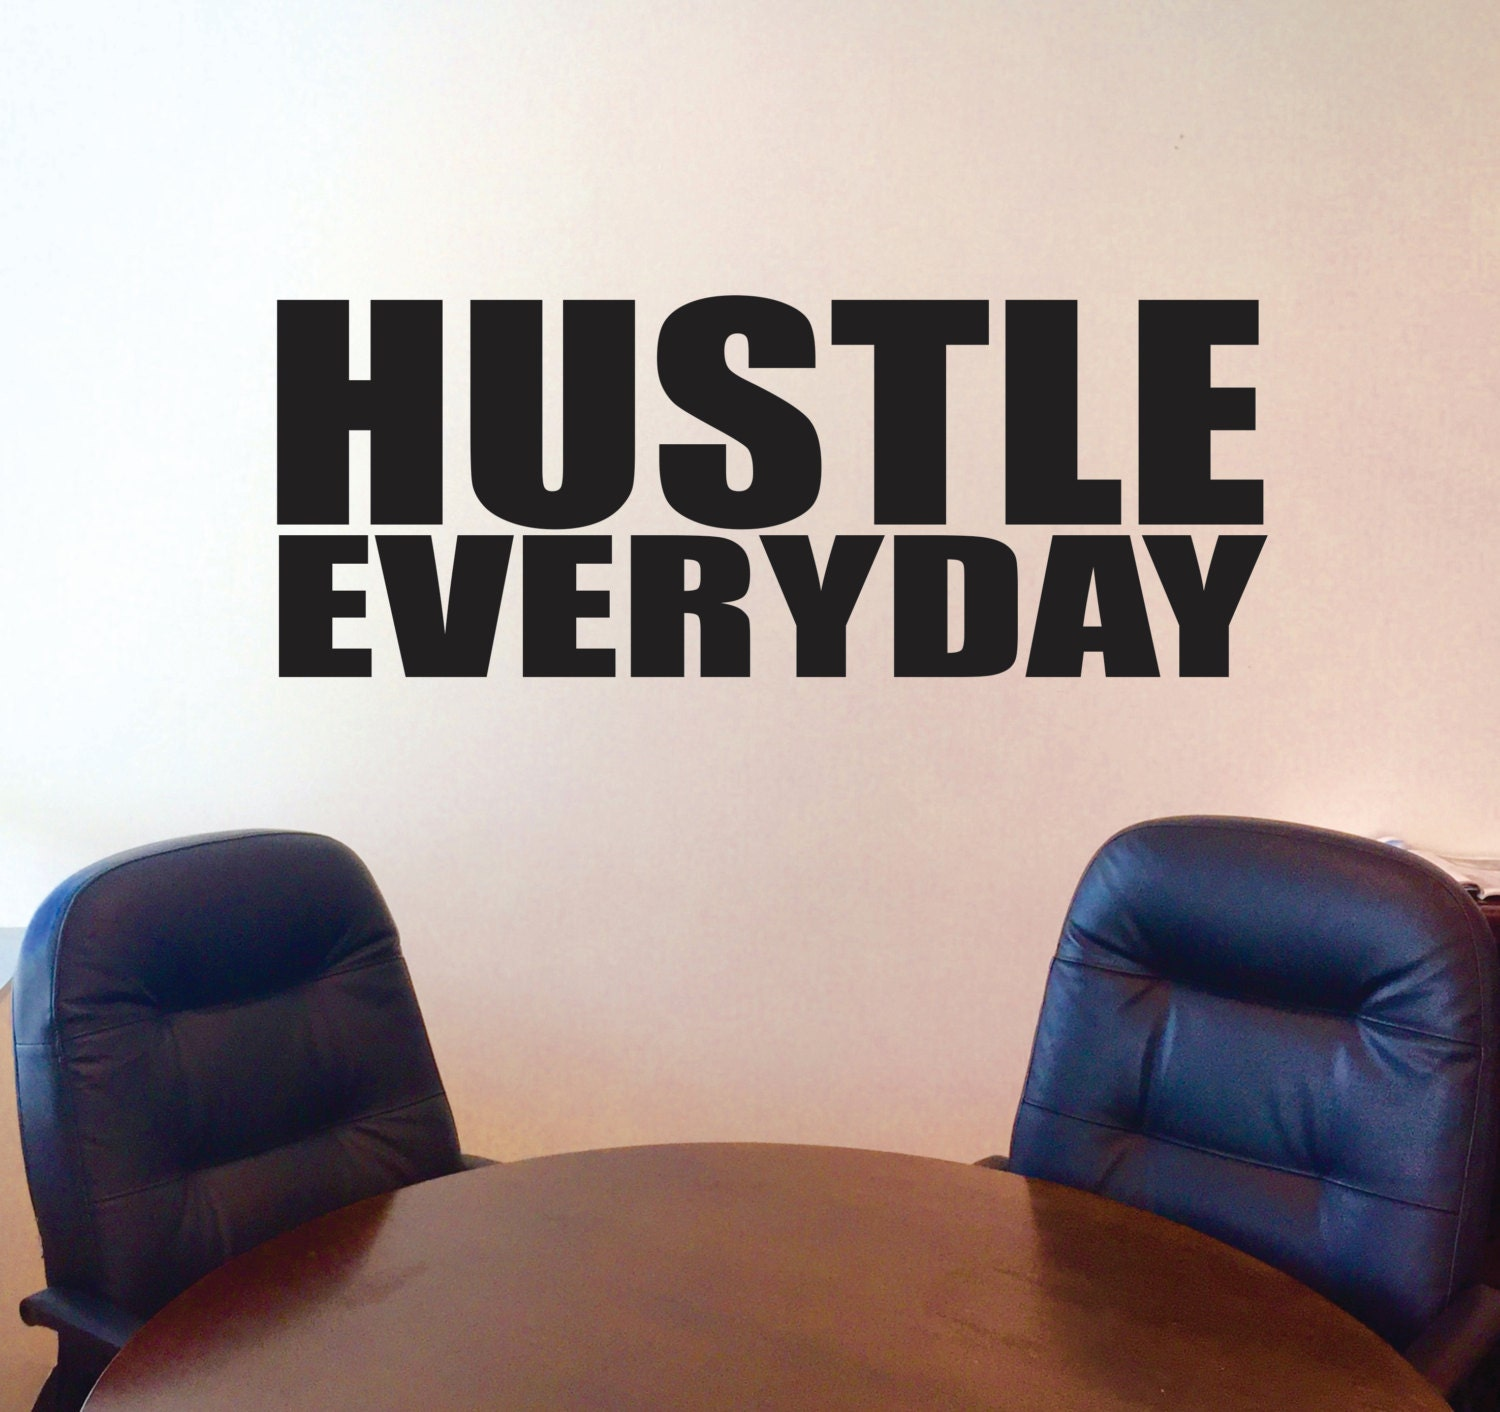 office wall decal. Hustle Everyday Wall Decal, Motivational Inspirational Office Decor Decal .